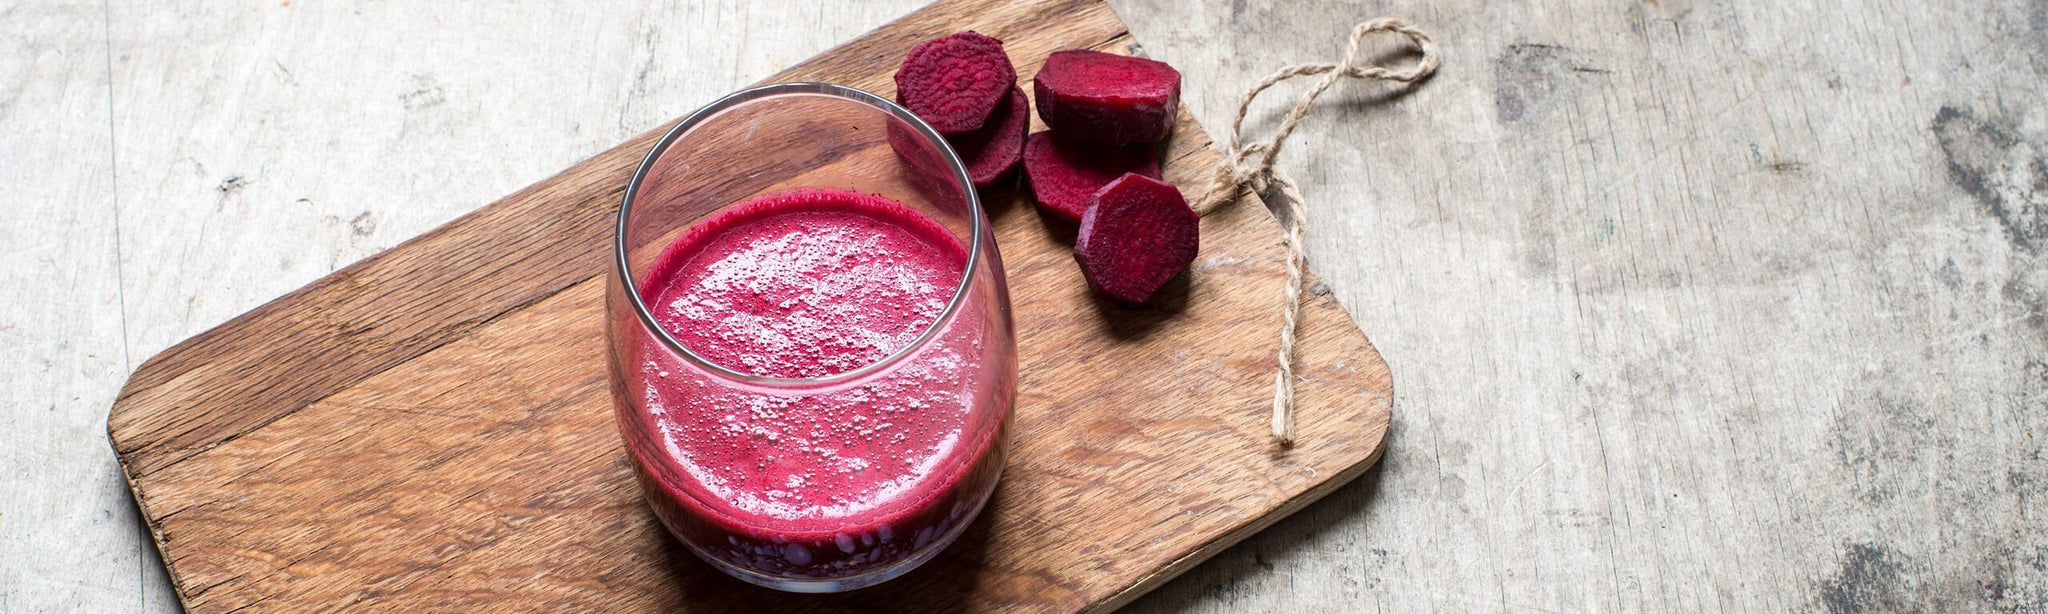 Ruby Zinger Smoothie